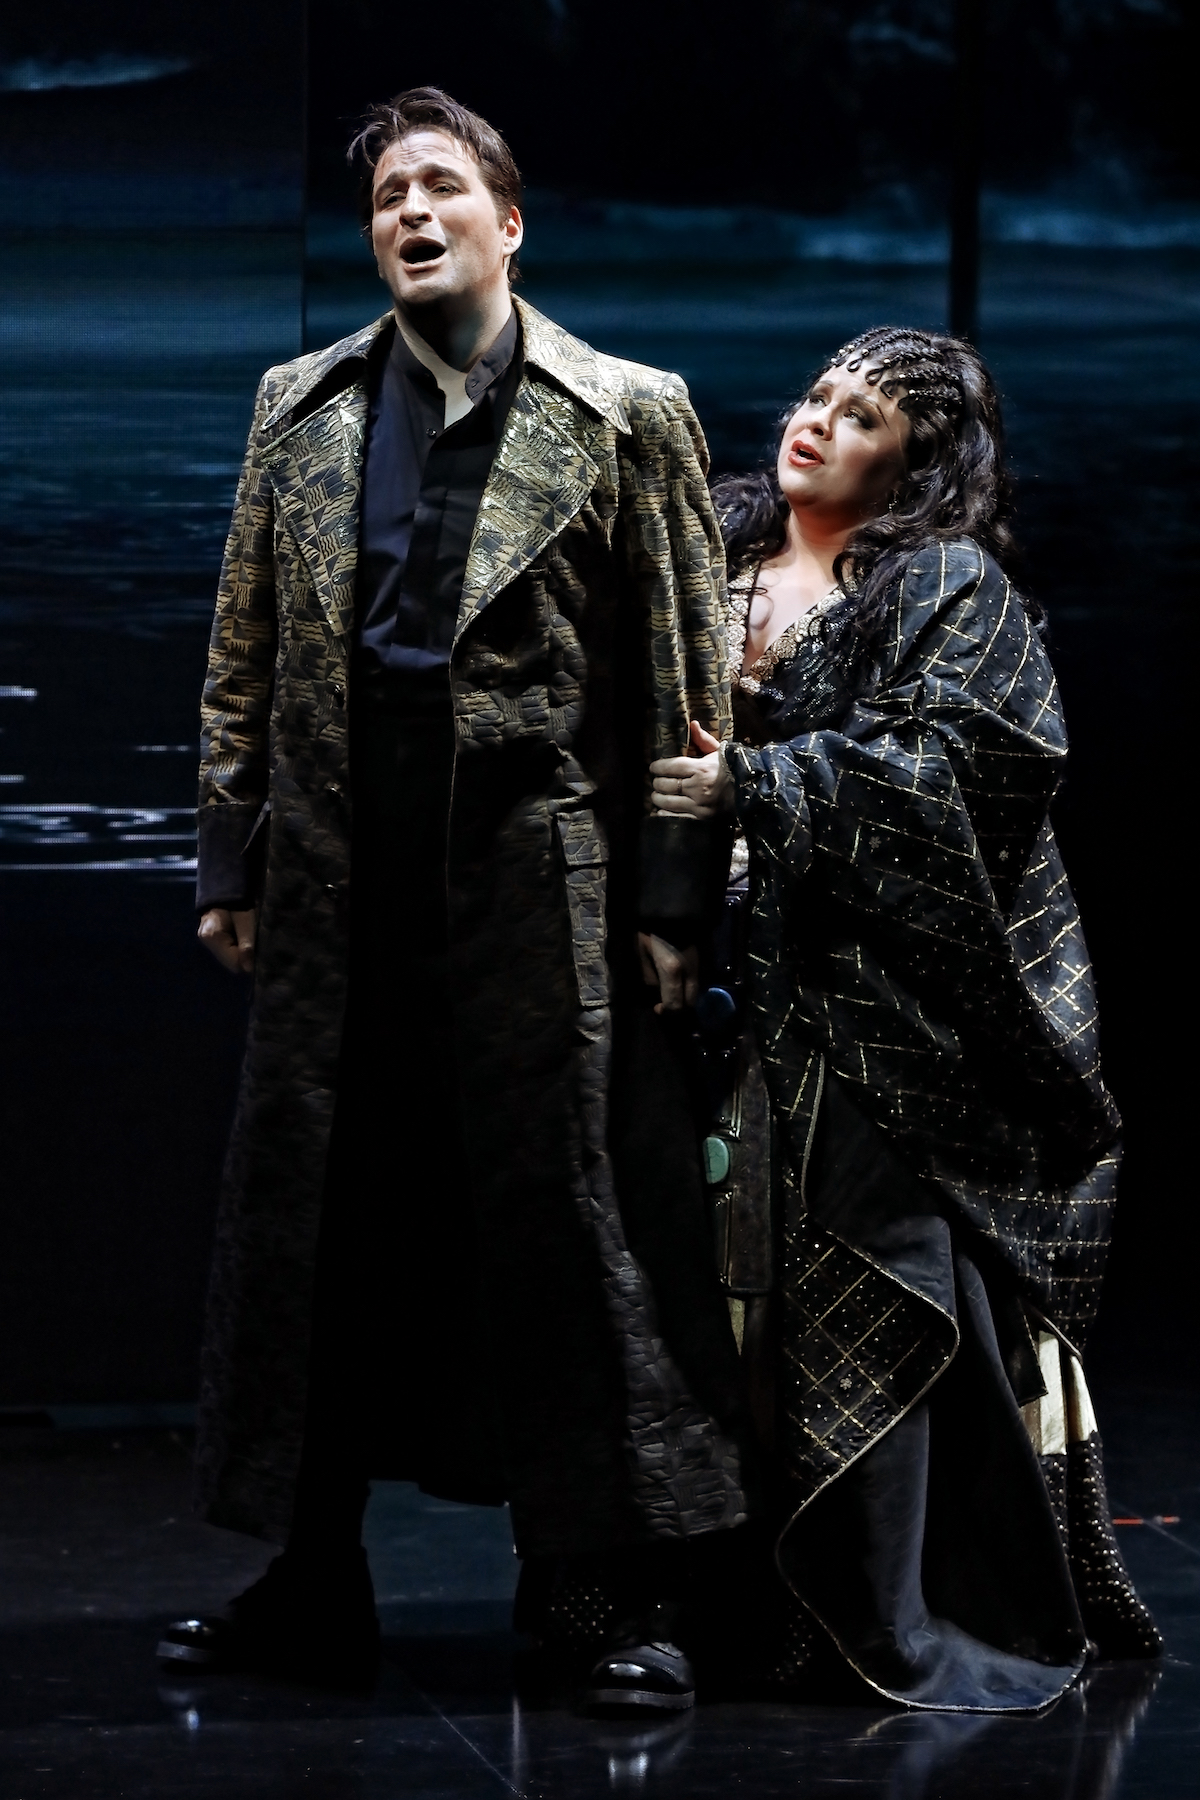 Amber Wagner (Aida) and Riccardo Massi (Radamès) in Opera Australia's 2018 production of Aida